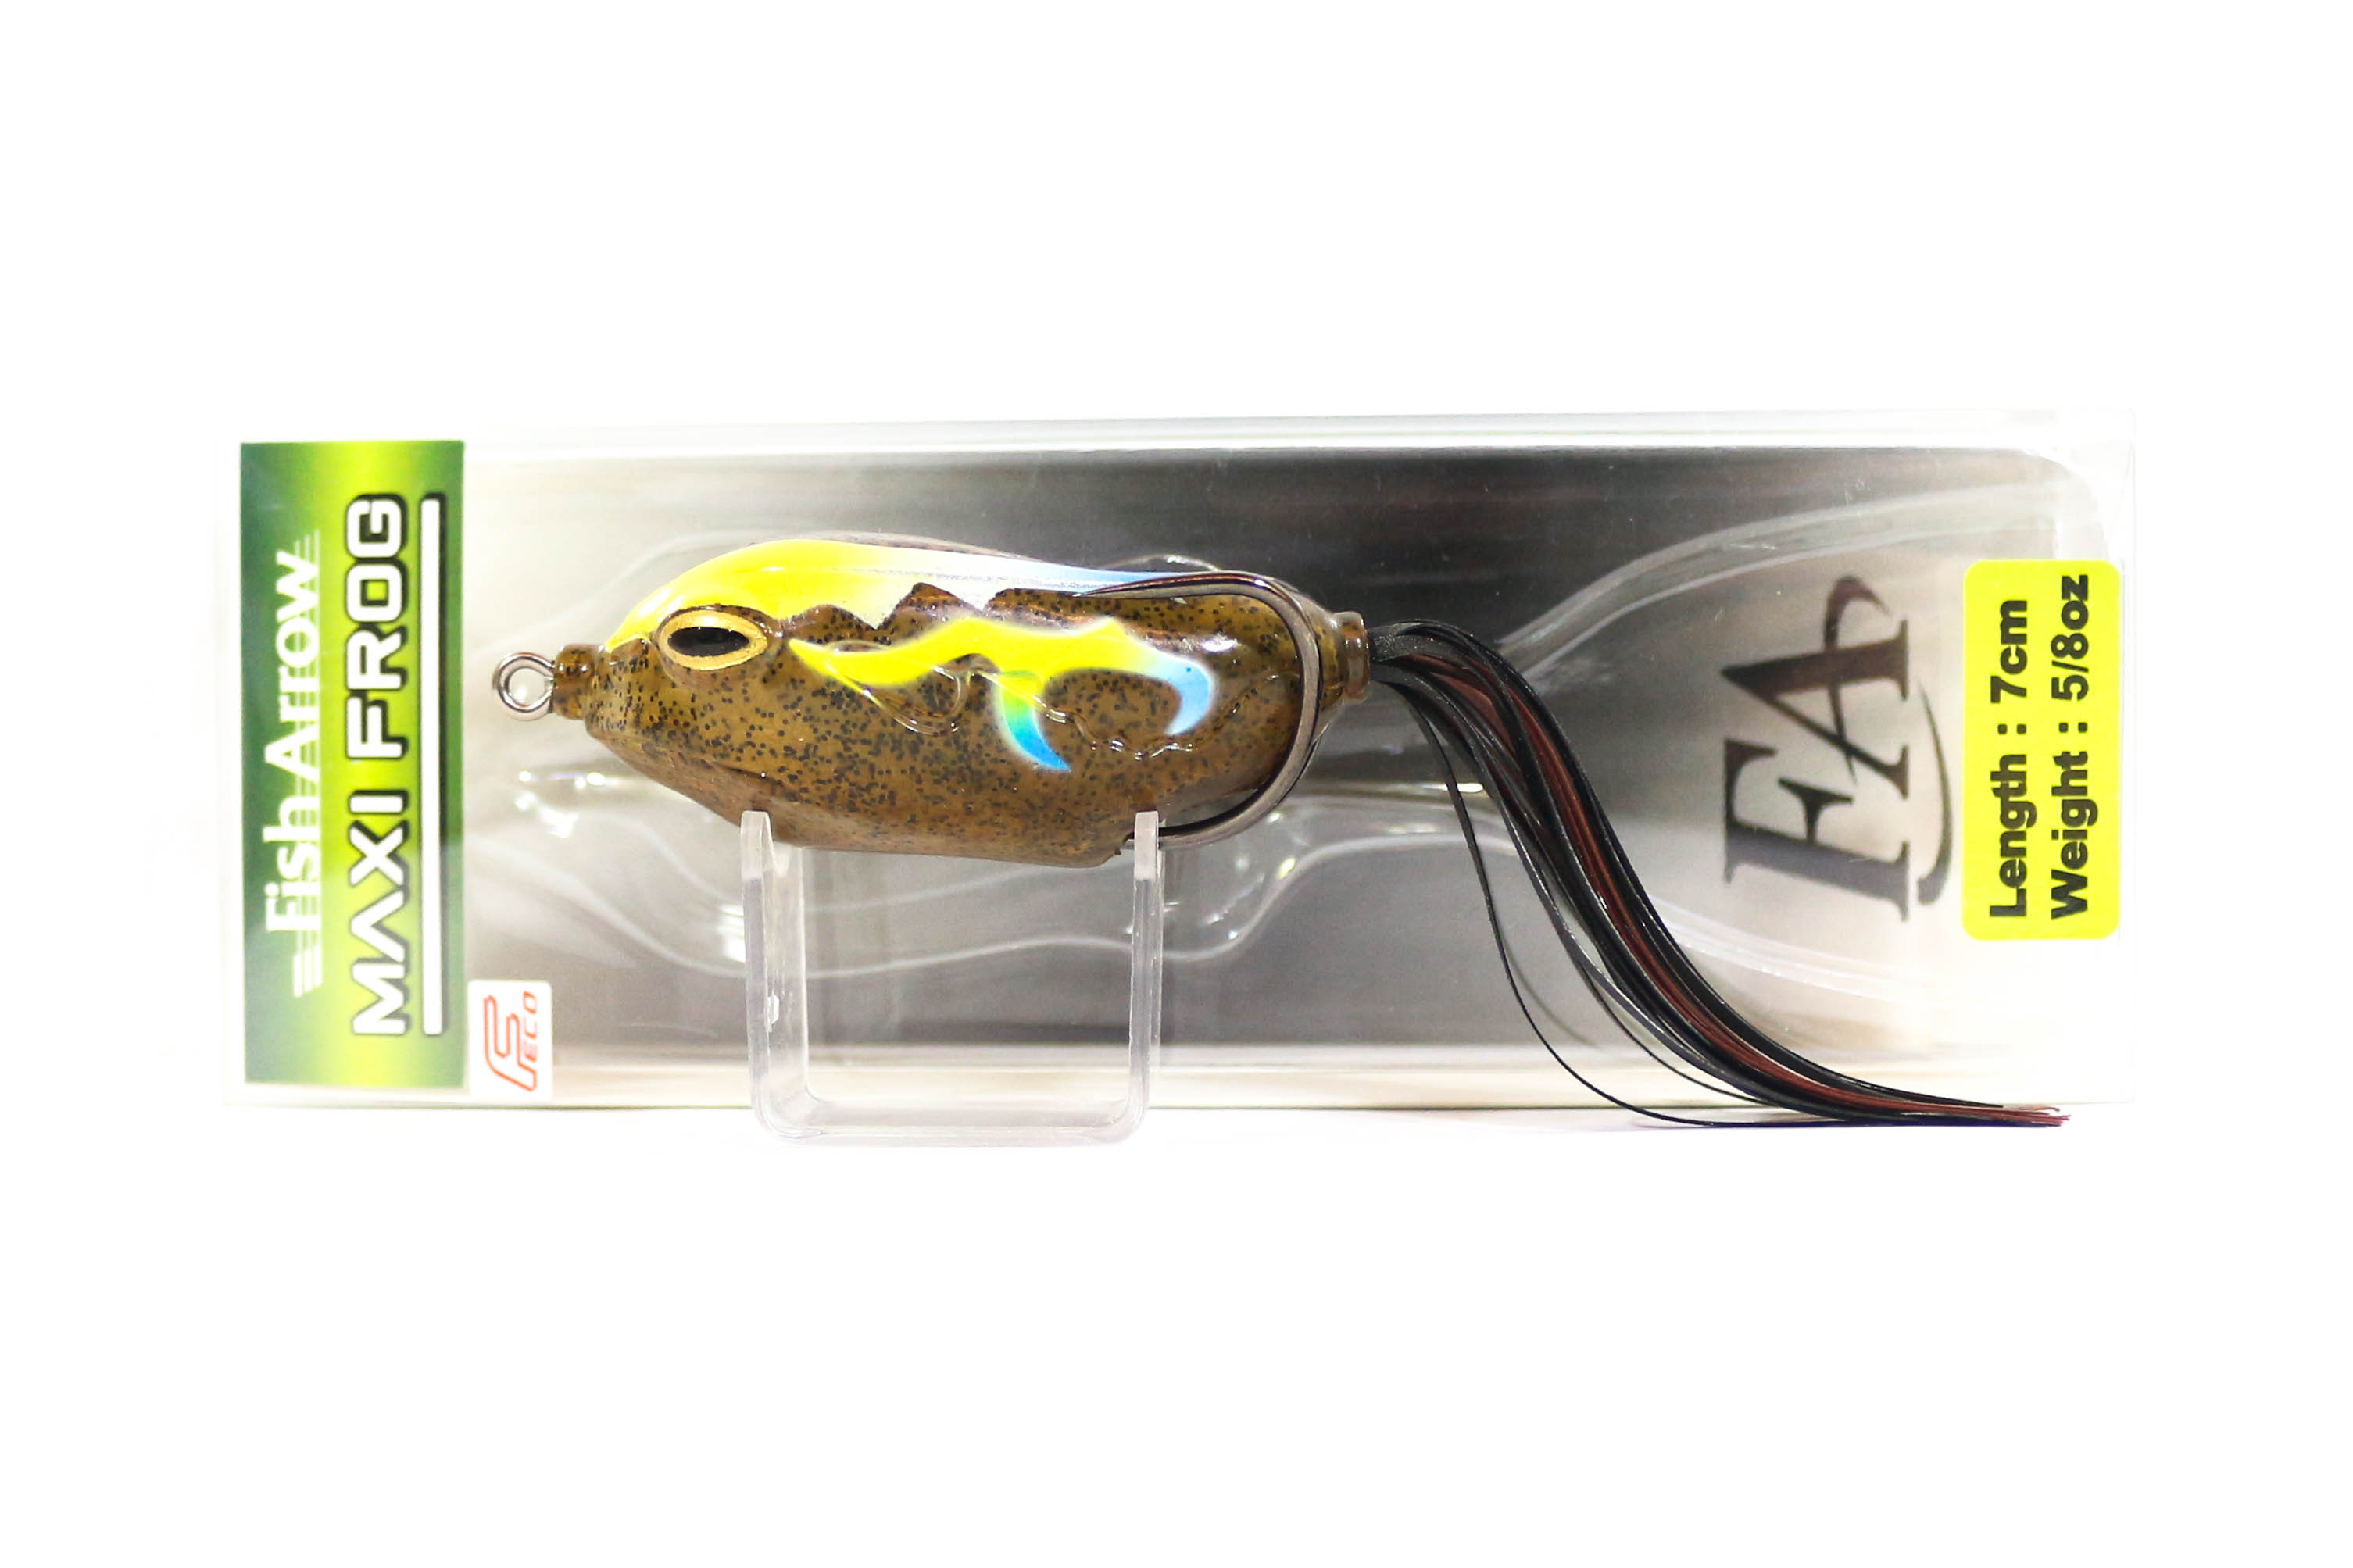 Fish Arrow Maxi Frog 7 cm 5/8 oz Soft Plastic Floating Lure 03 (4170)